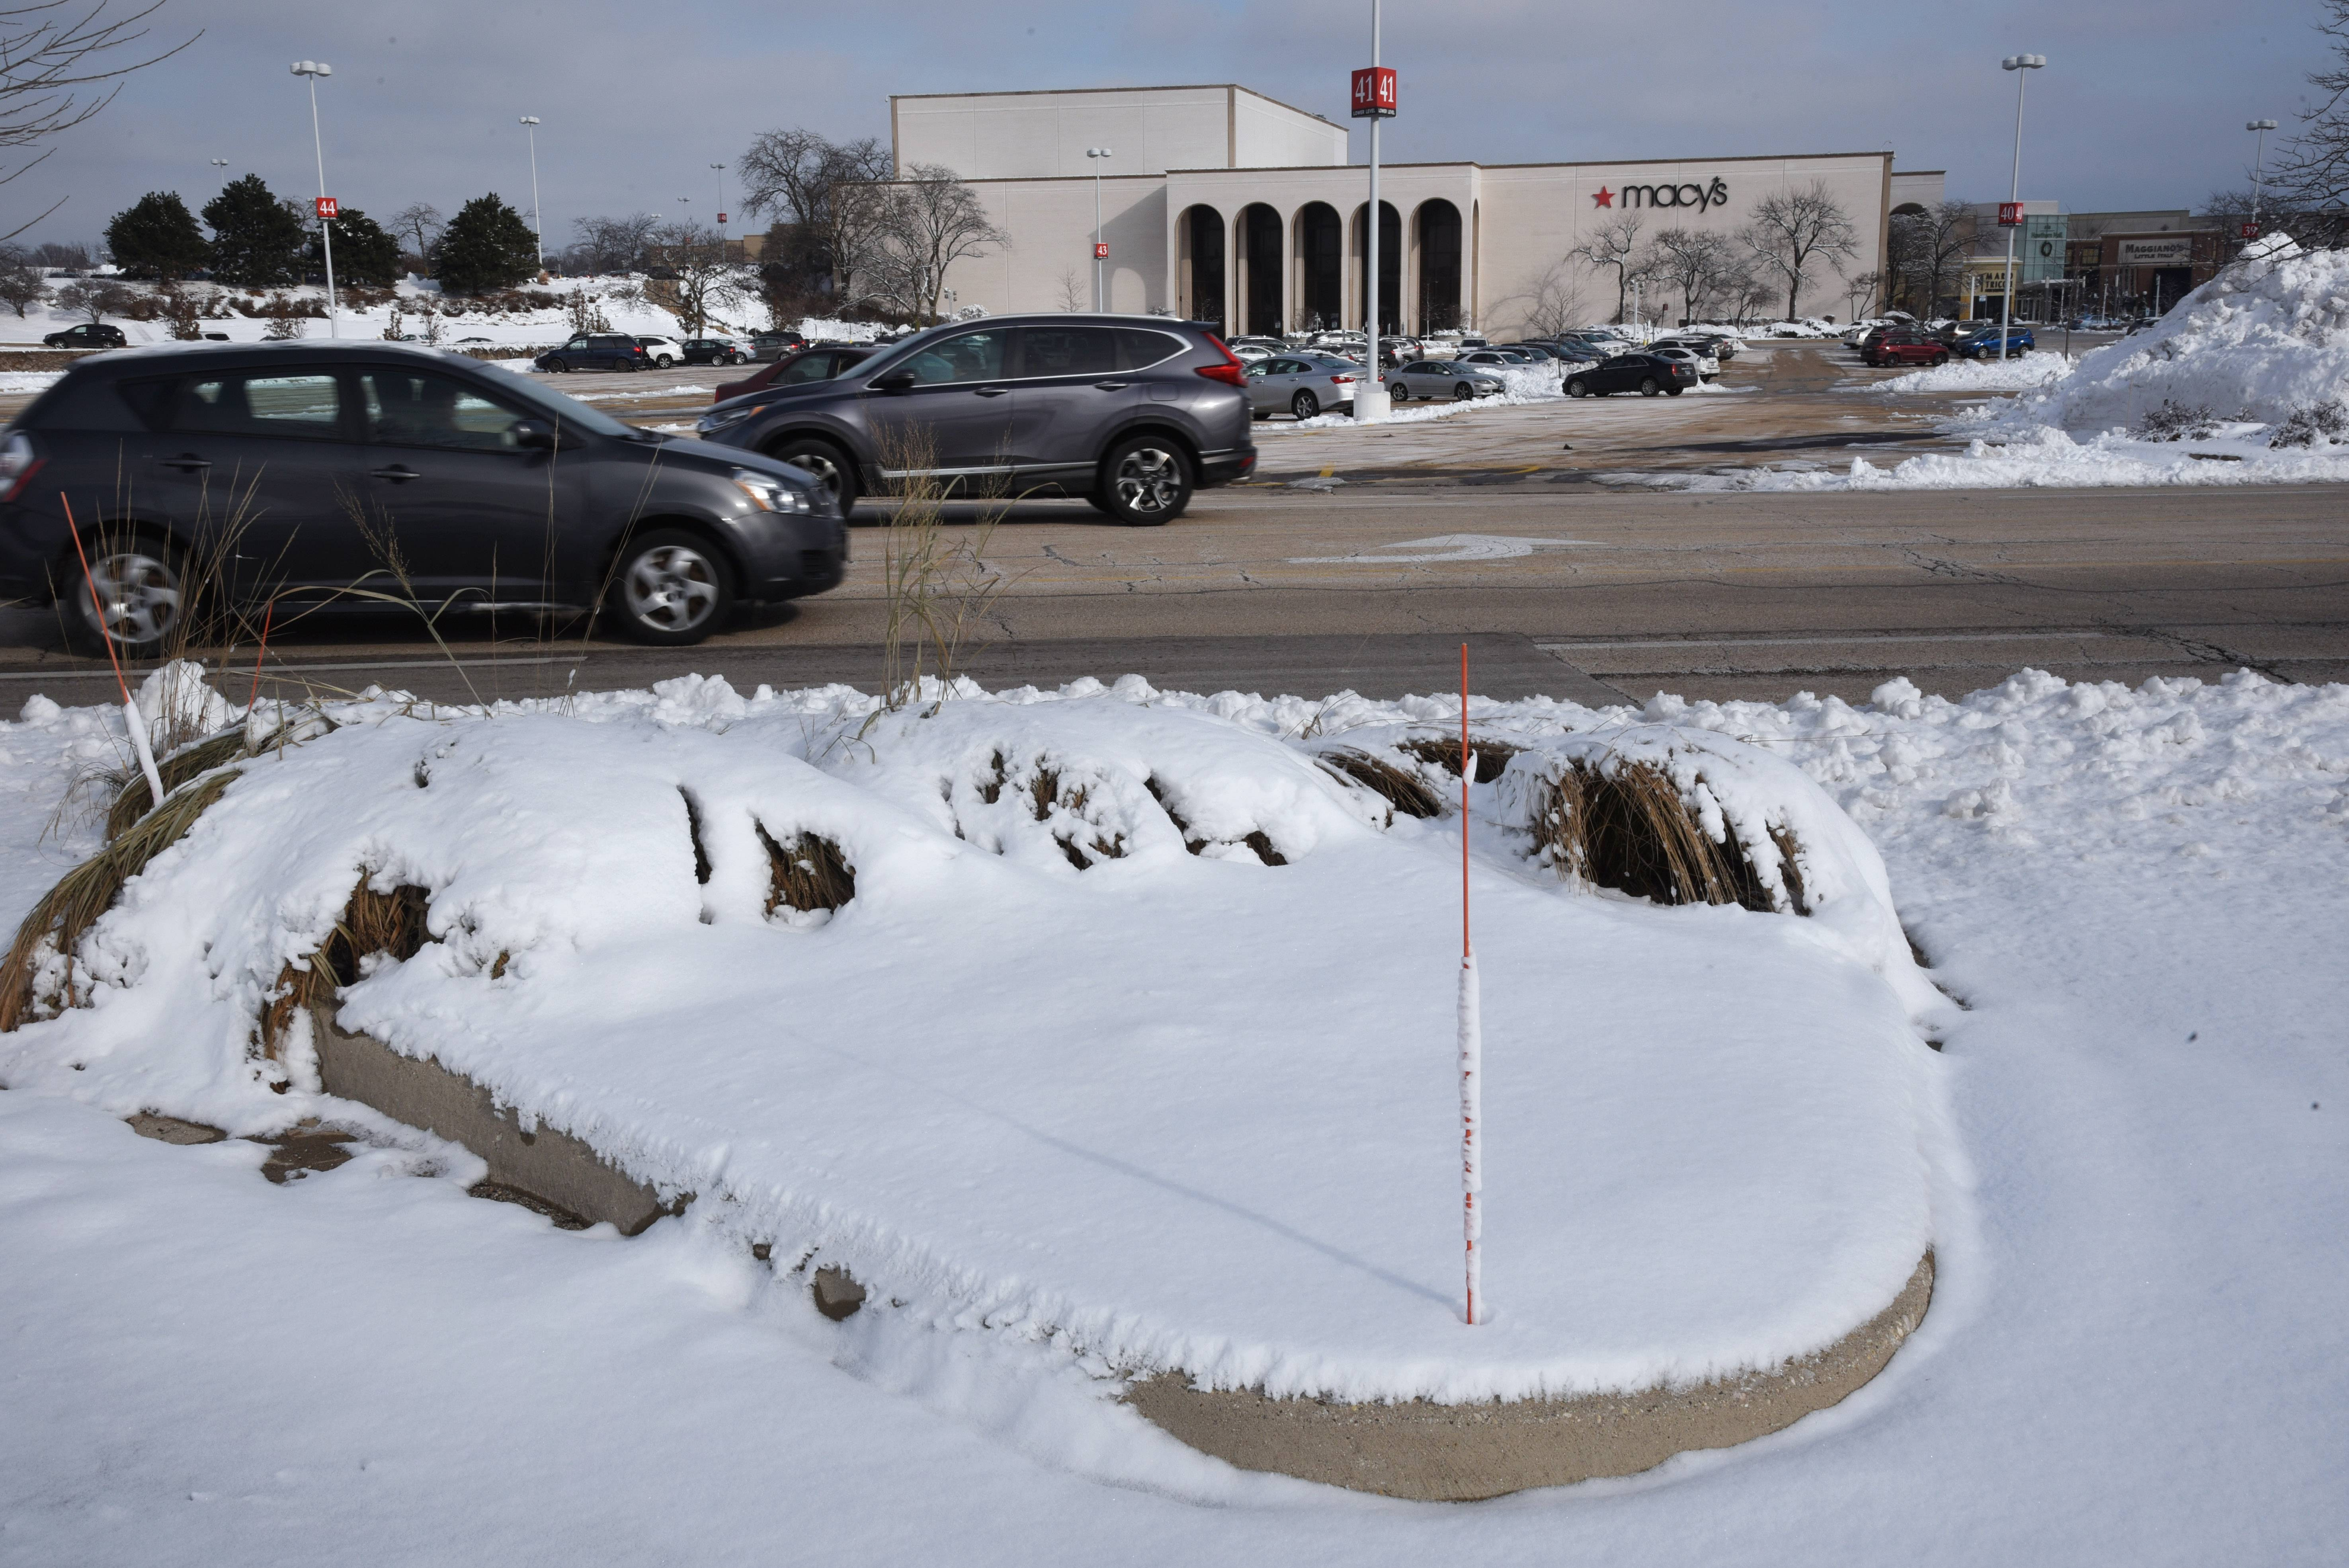 Vernon Hills wants Macy's to scale back Hawthorn Mall plan